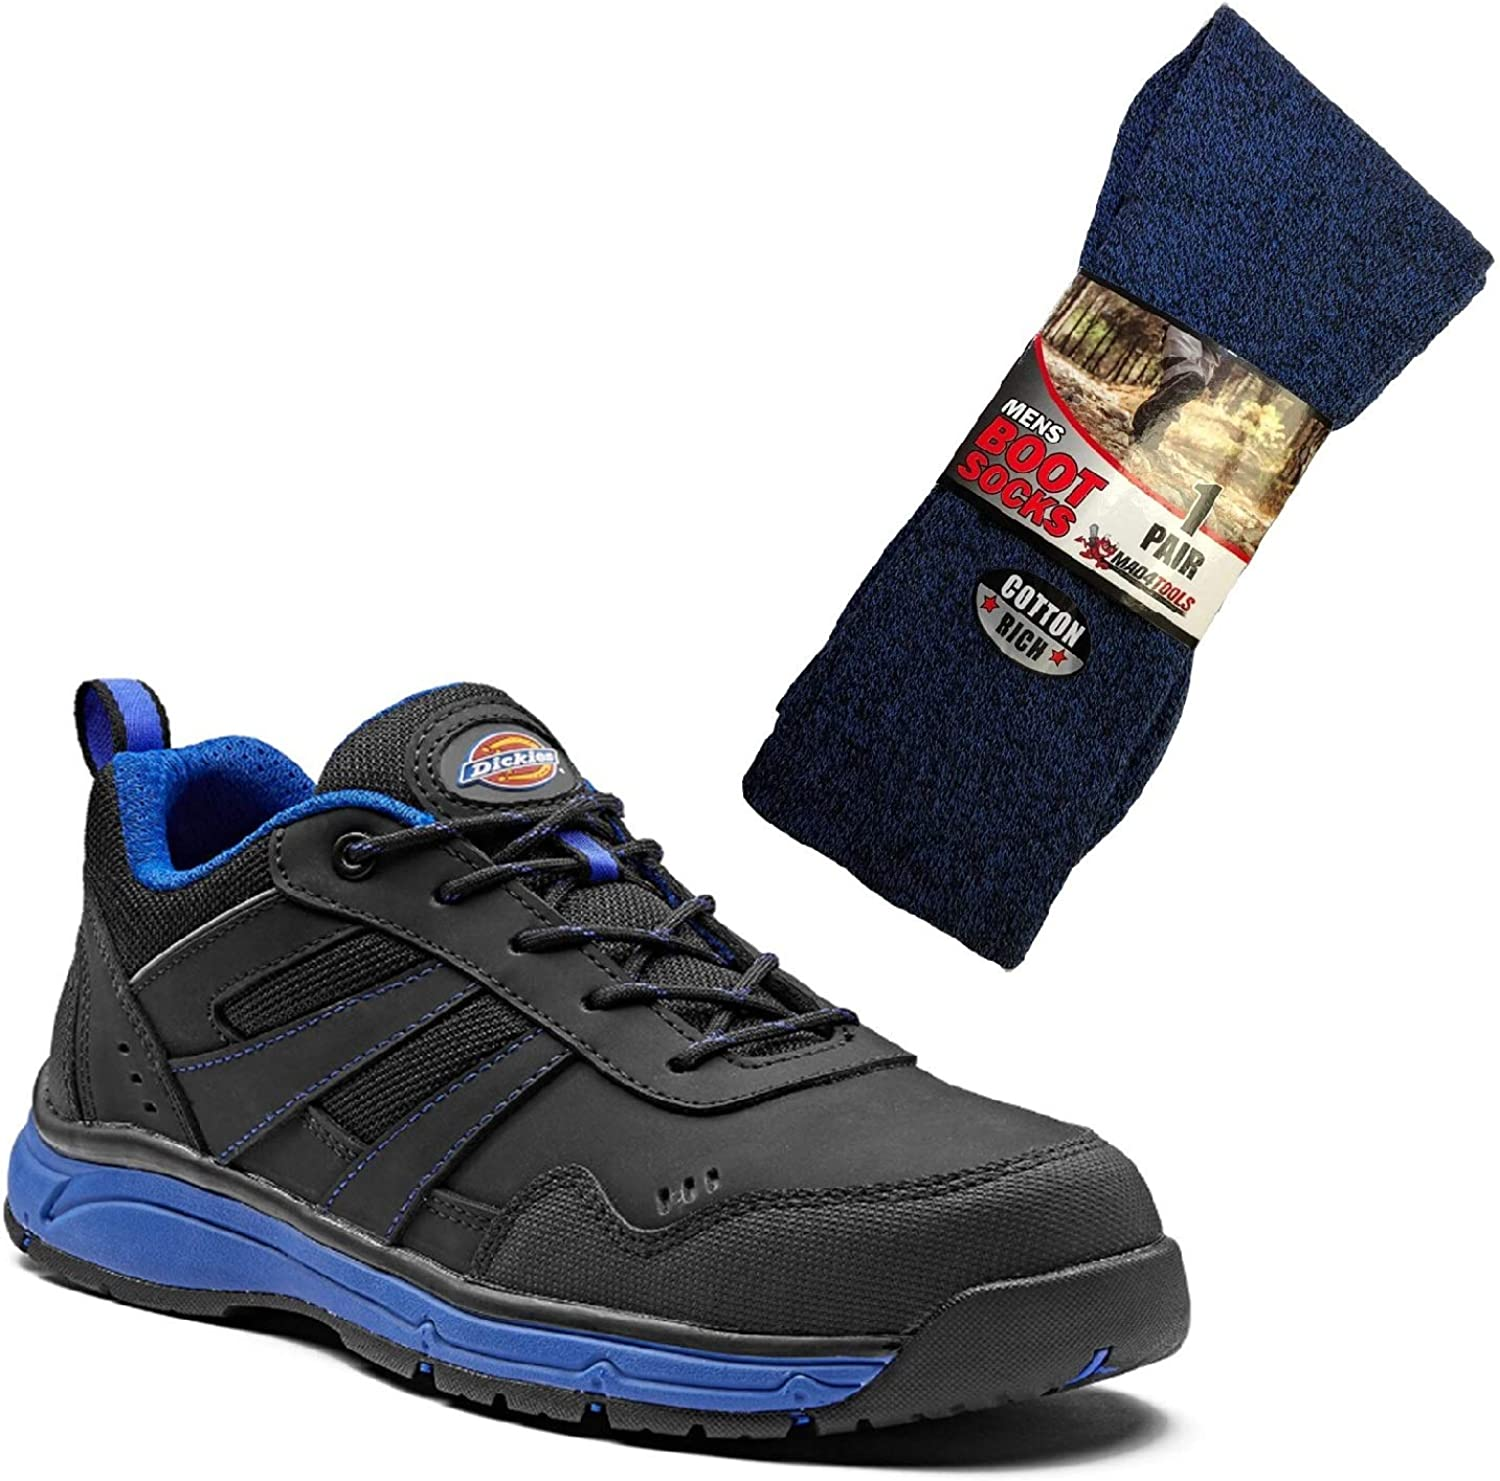 Dickies Emerson Safety Work Trainers and Boot Socks